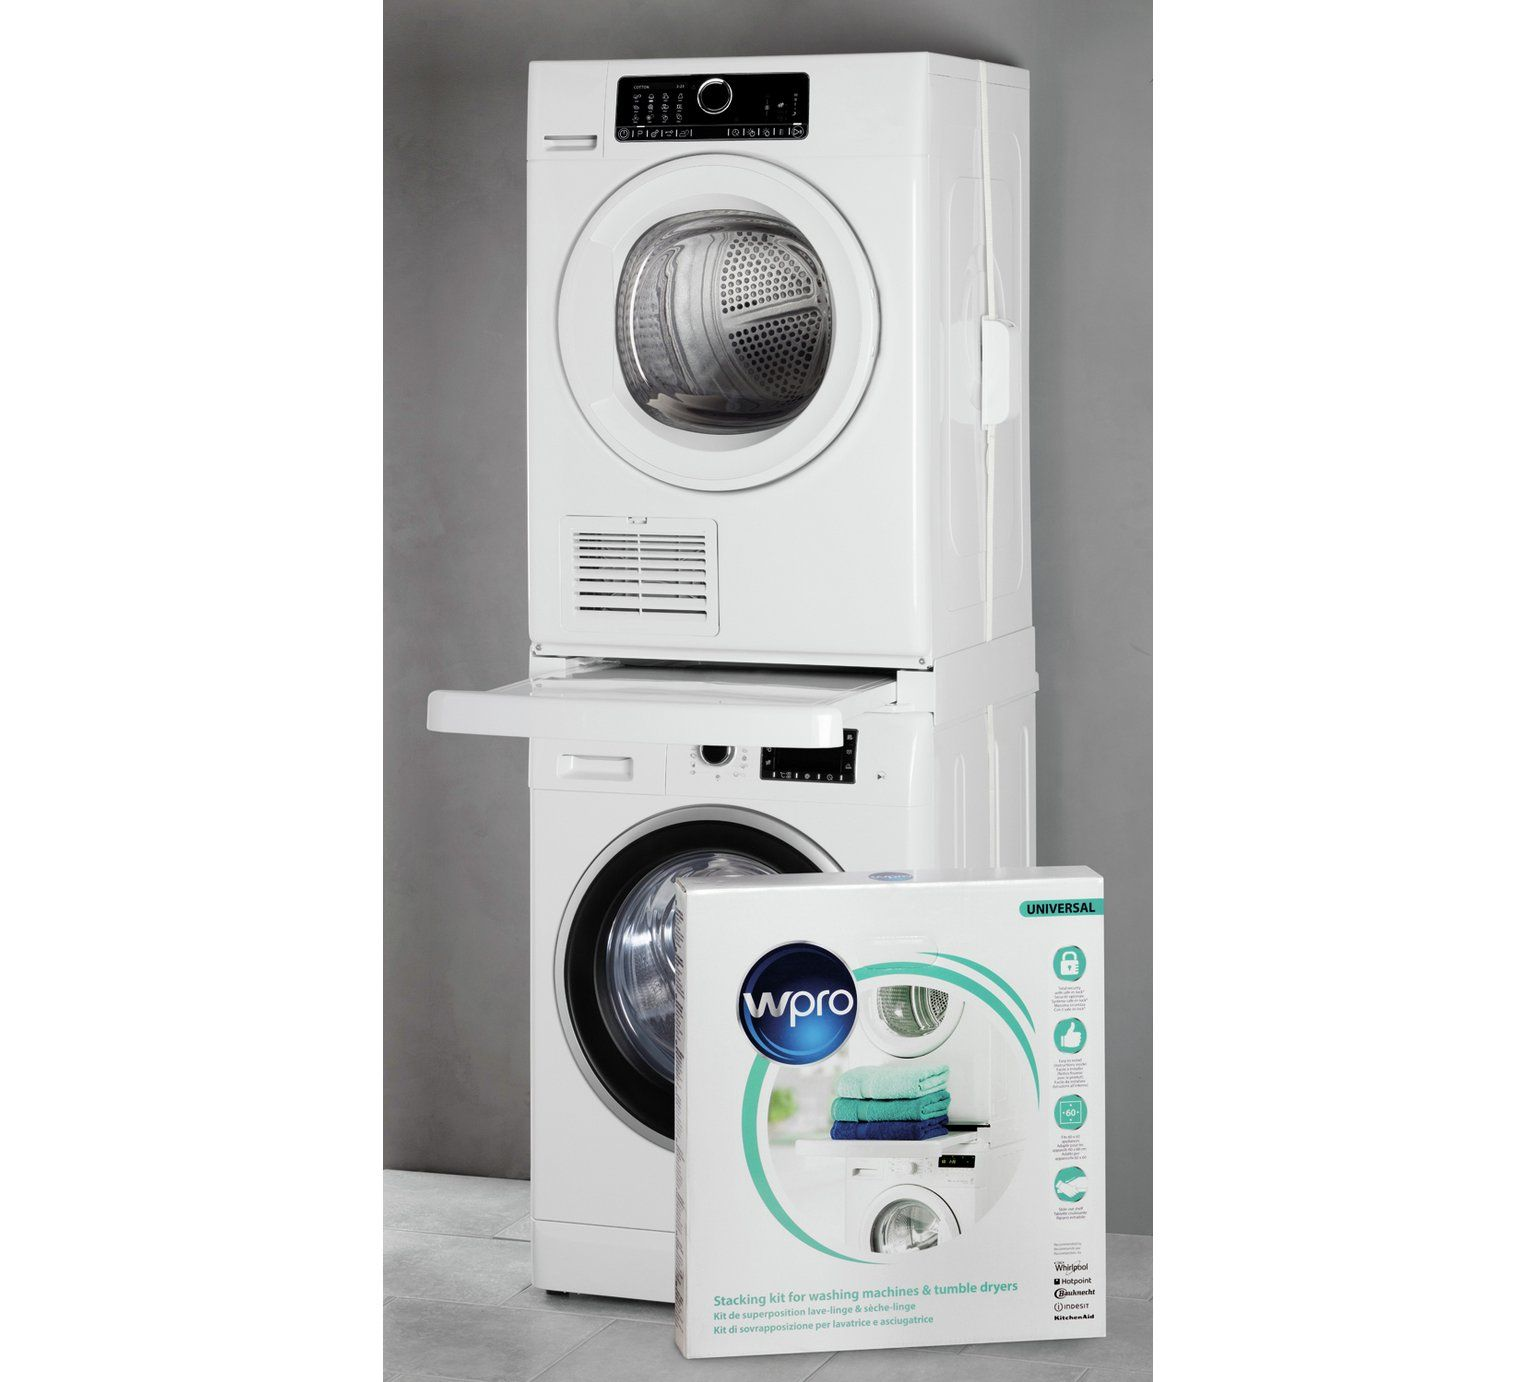 Buy Wpro Tumble Dryer Universal Stacking Kit Large Kitchen Appliance Accessories Argos Kitchen Large Appliances Tumble Dryer Stacking Washing Machine